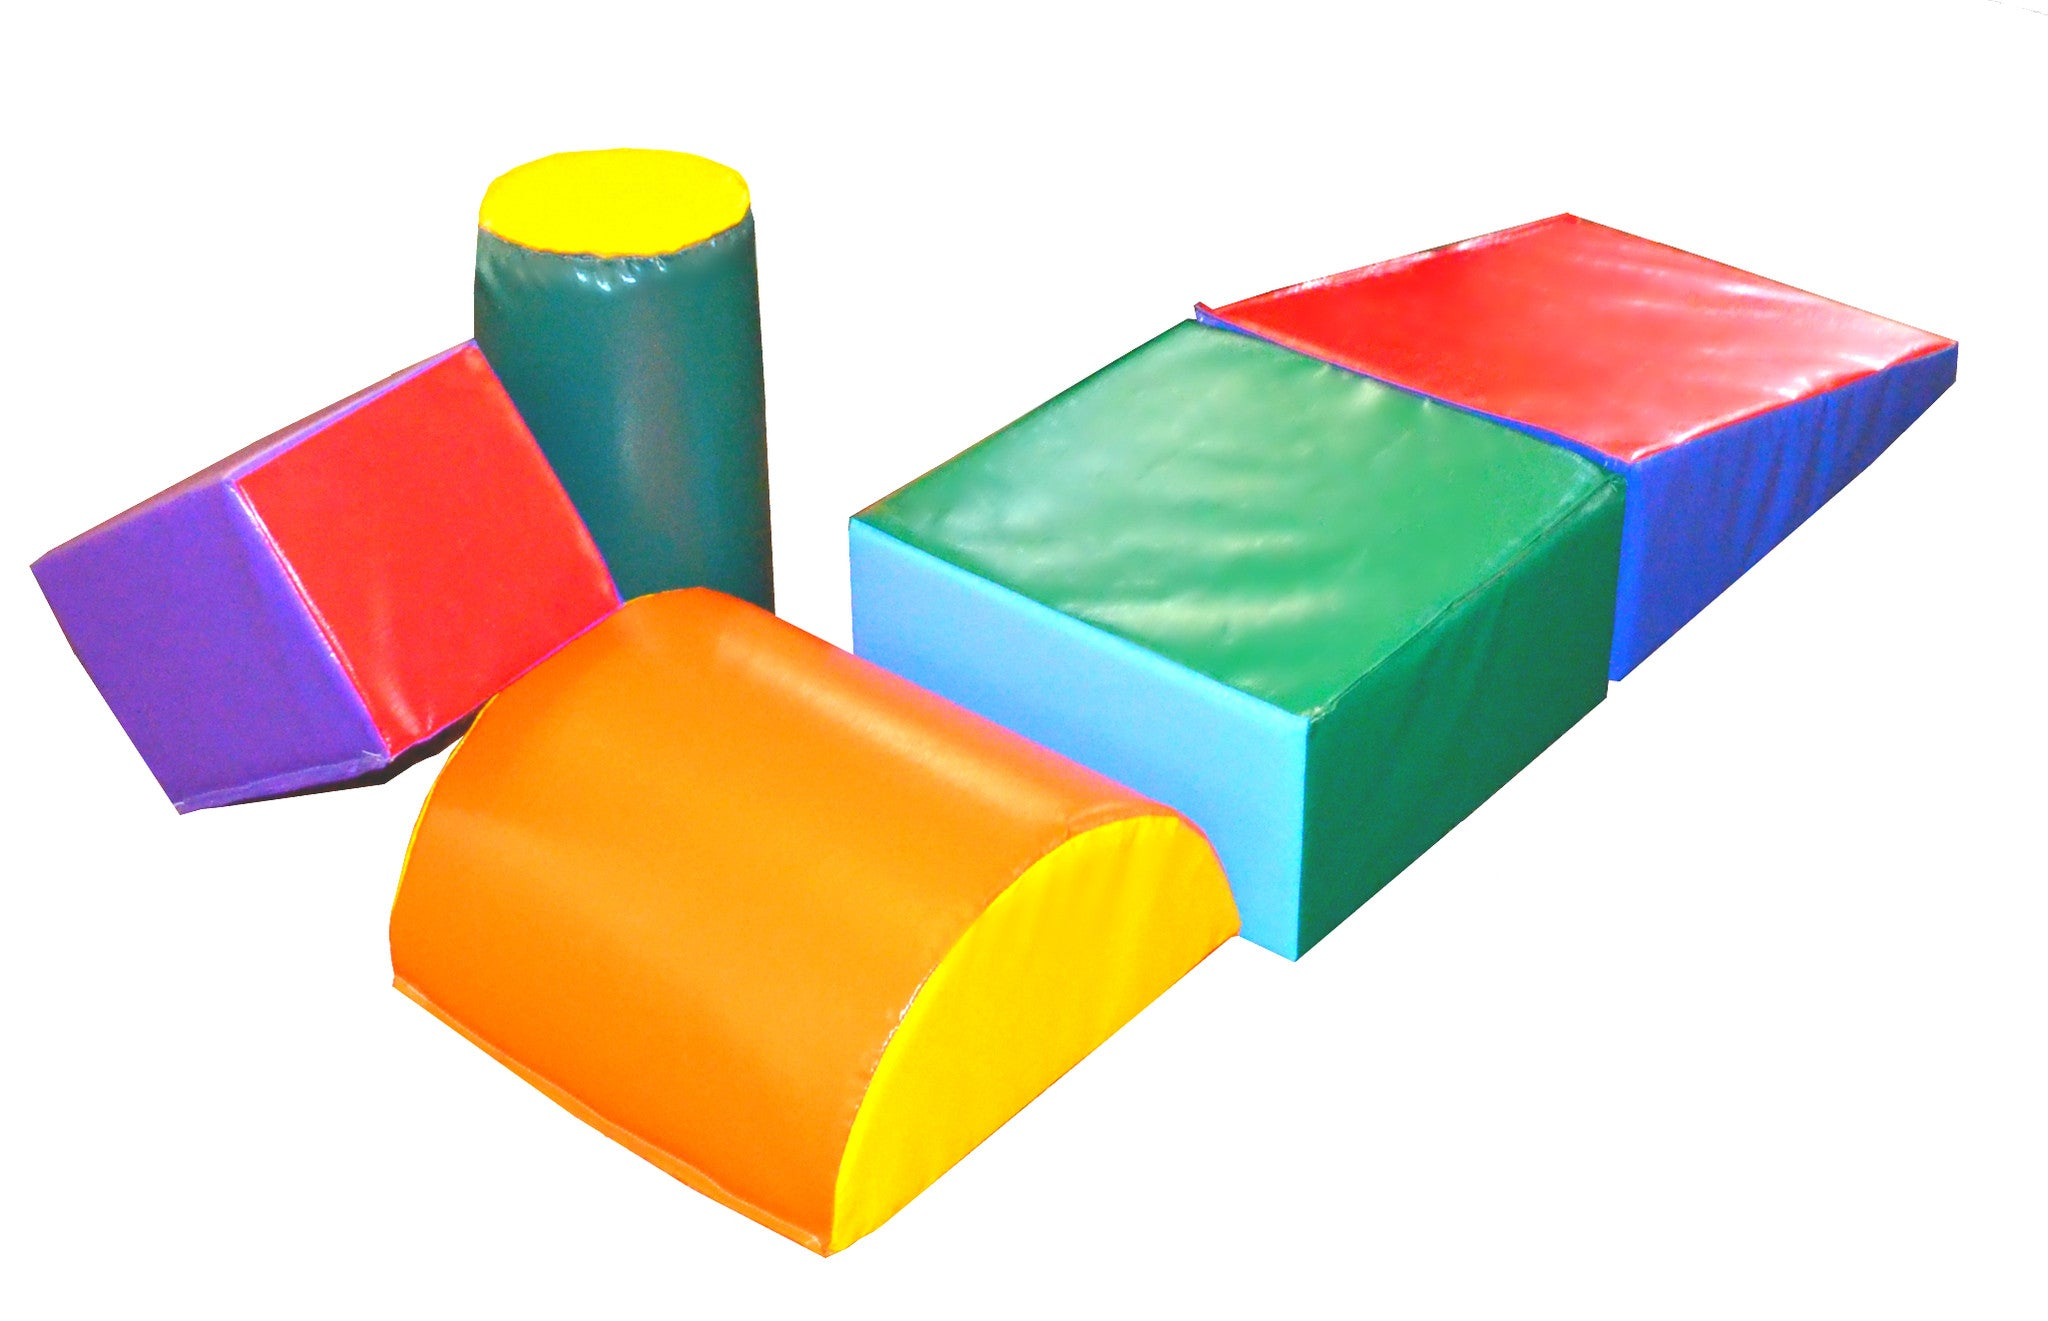 Soft Play 5-Piece Block Set